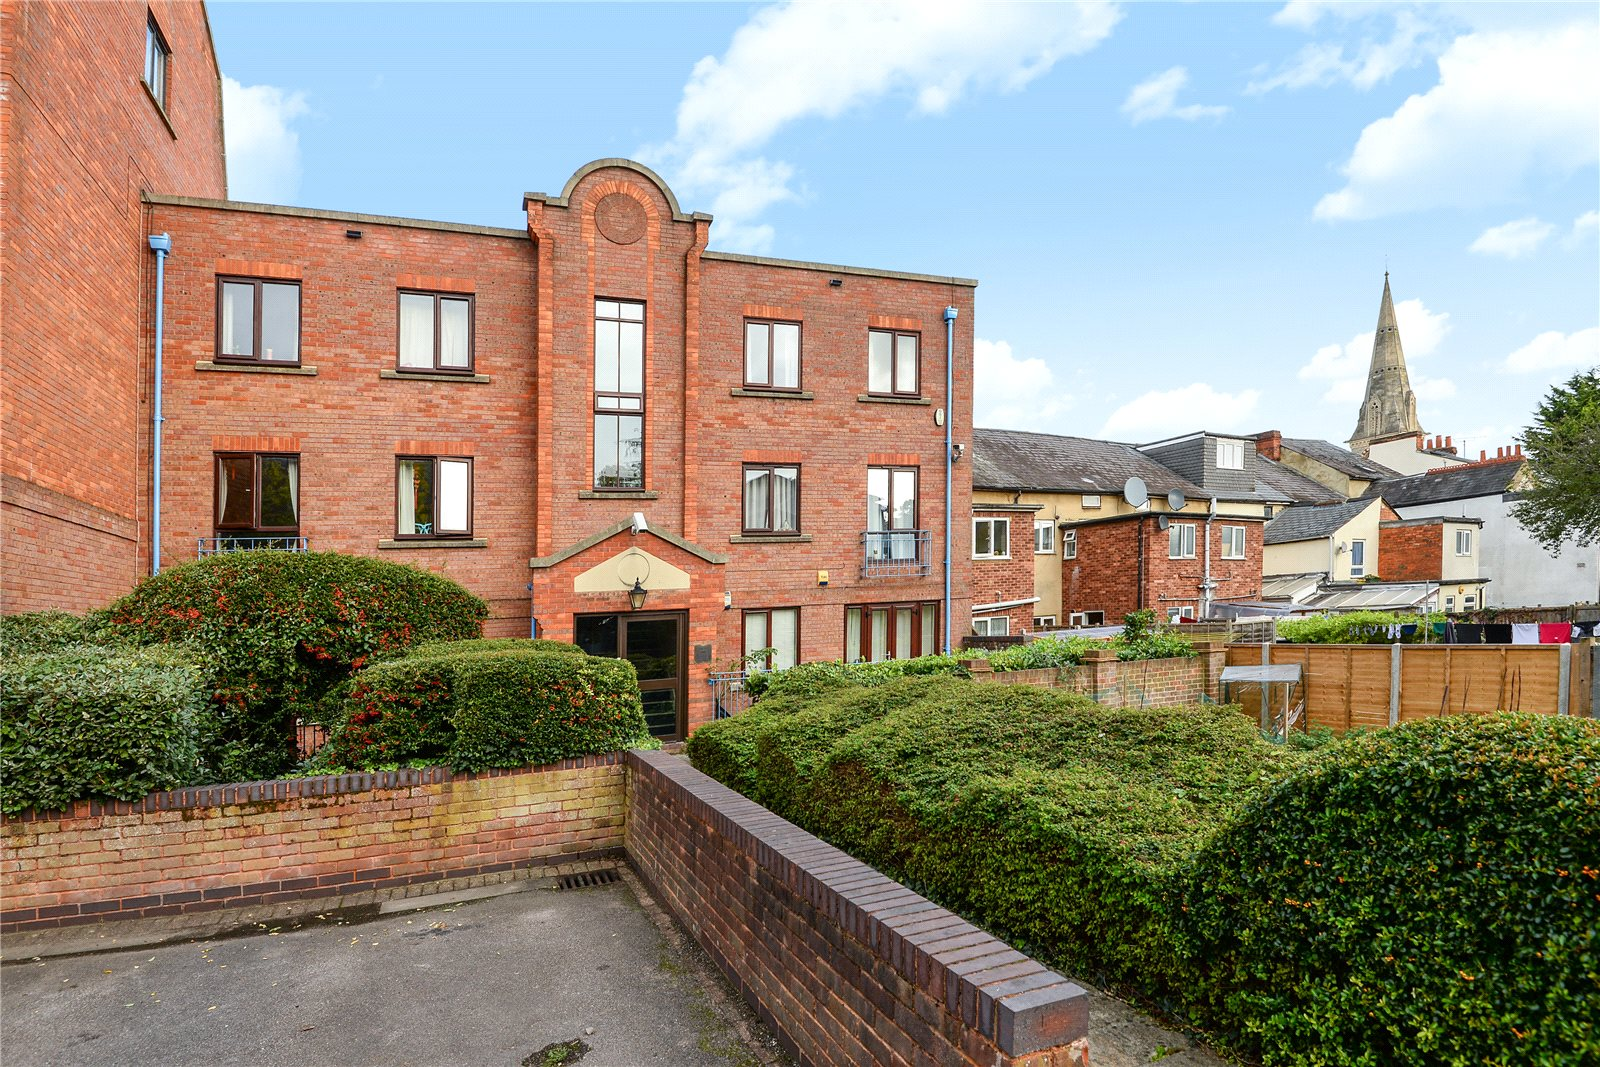 2 Bedrooms Apartment Flat for sale in Greys Court, Sidmouth Street, Reading, Berkshire, RG1